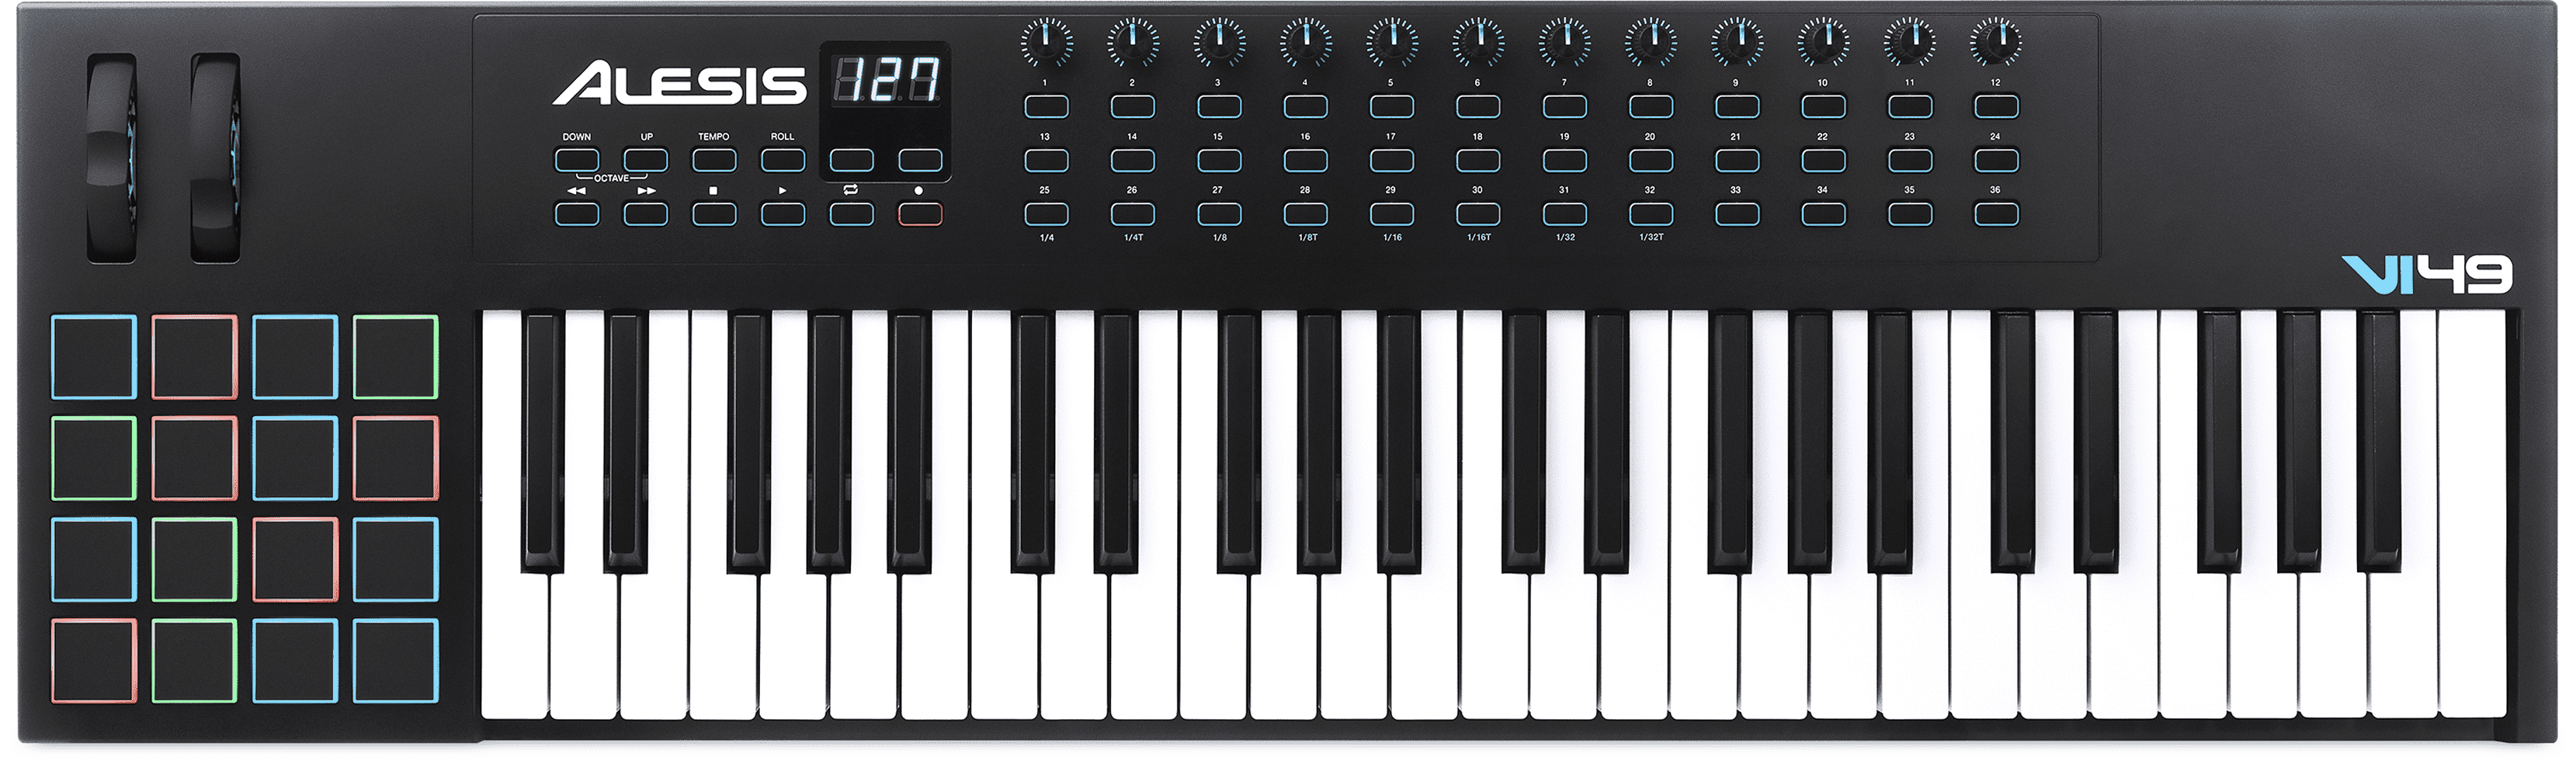 Any MIDI capable keyboard, pad controller, or drum kit.